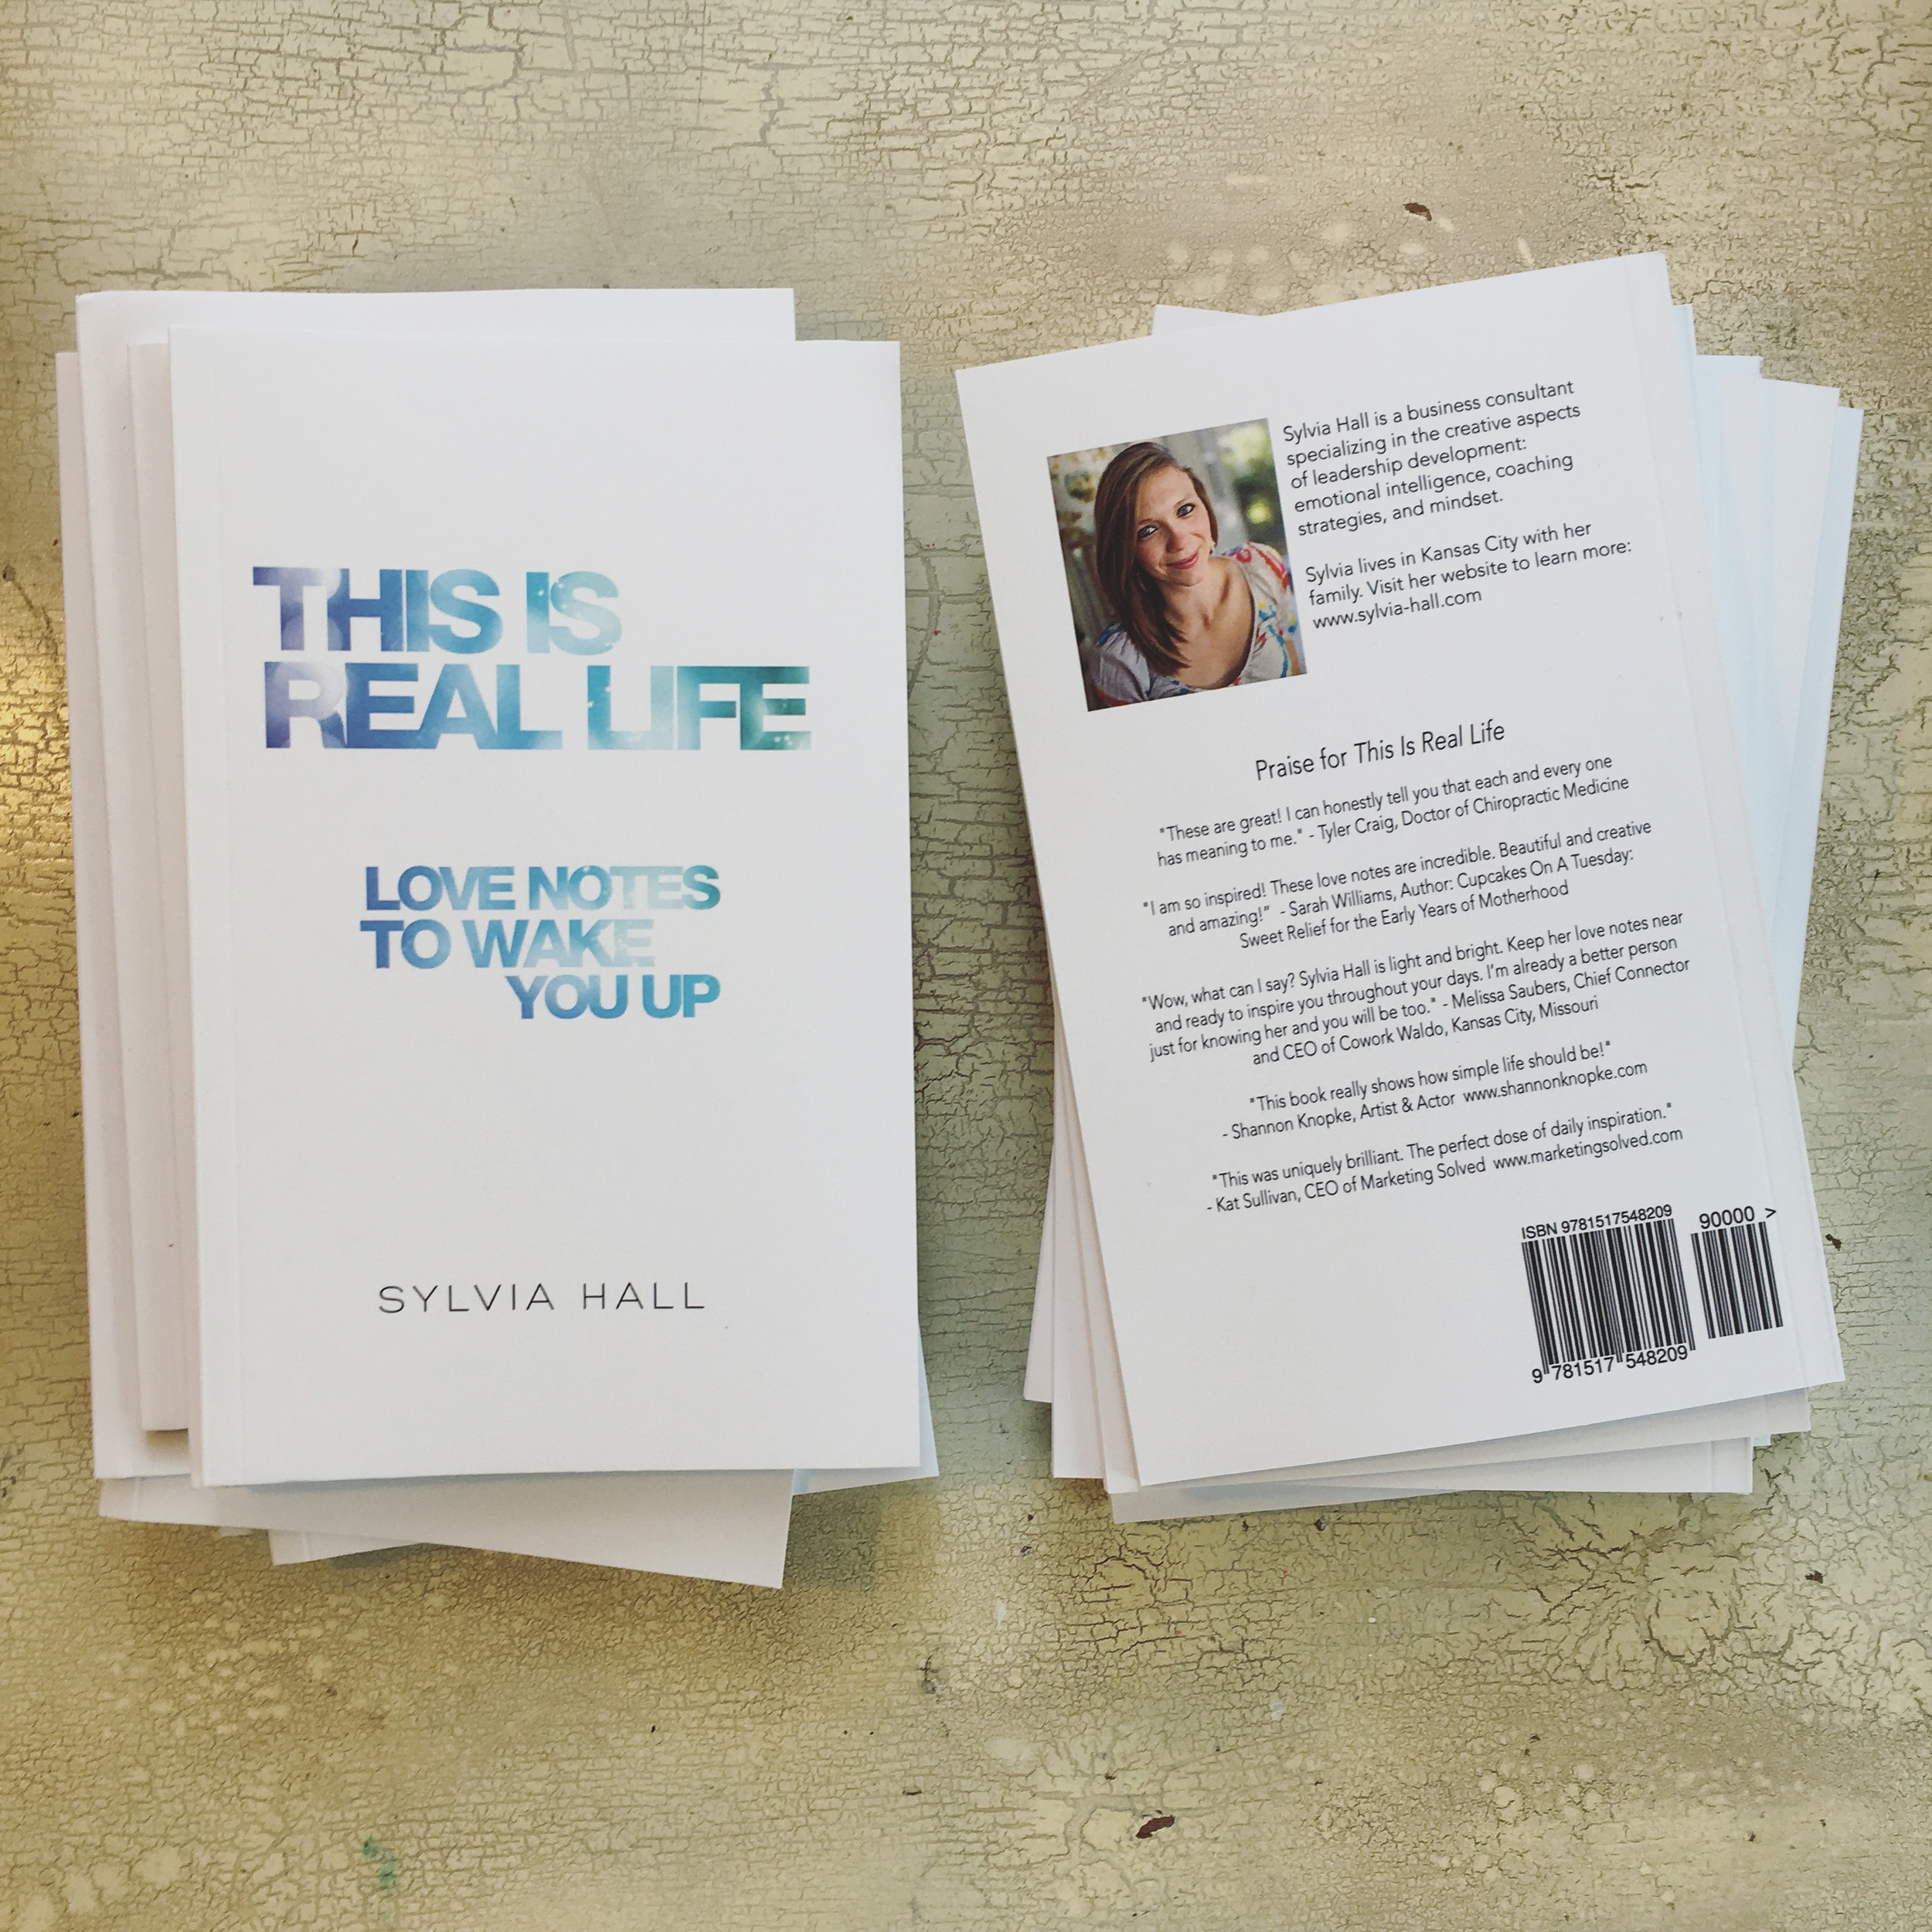 Sylvia Hall: This Is Real Life: Love Notes To Wake You Up